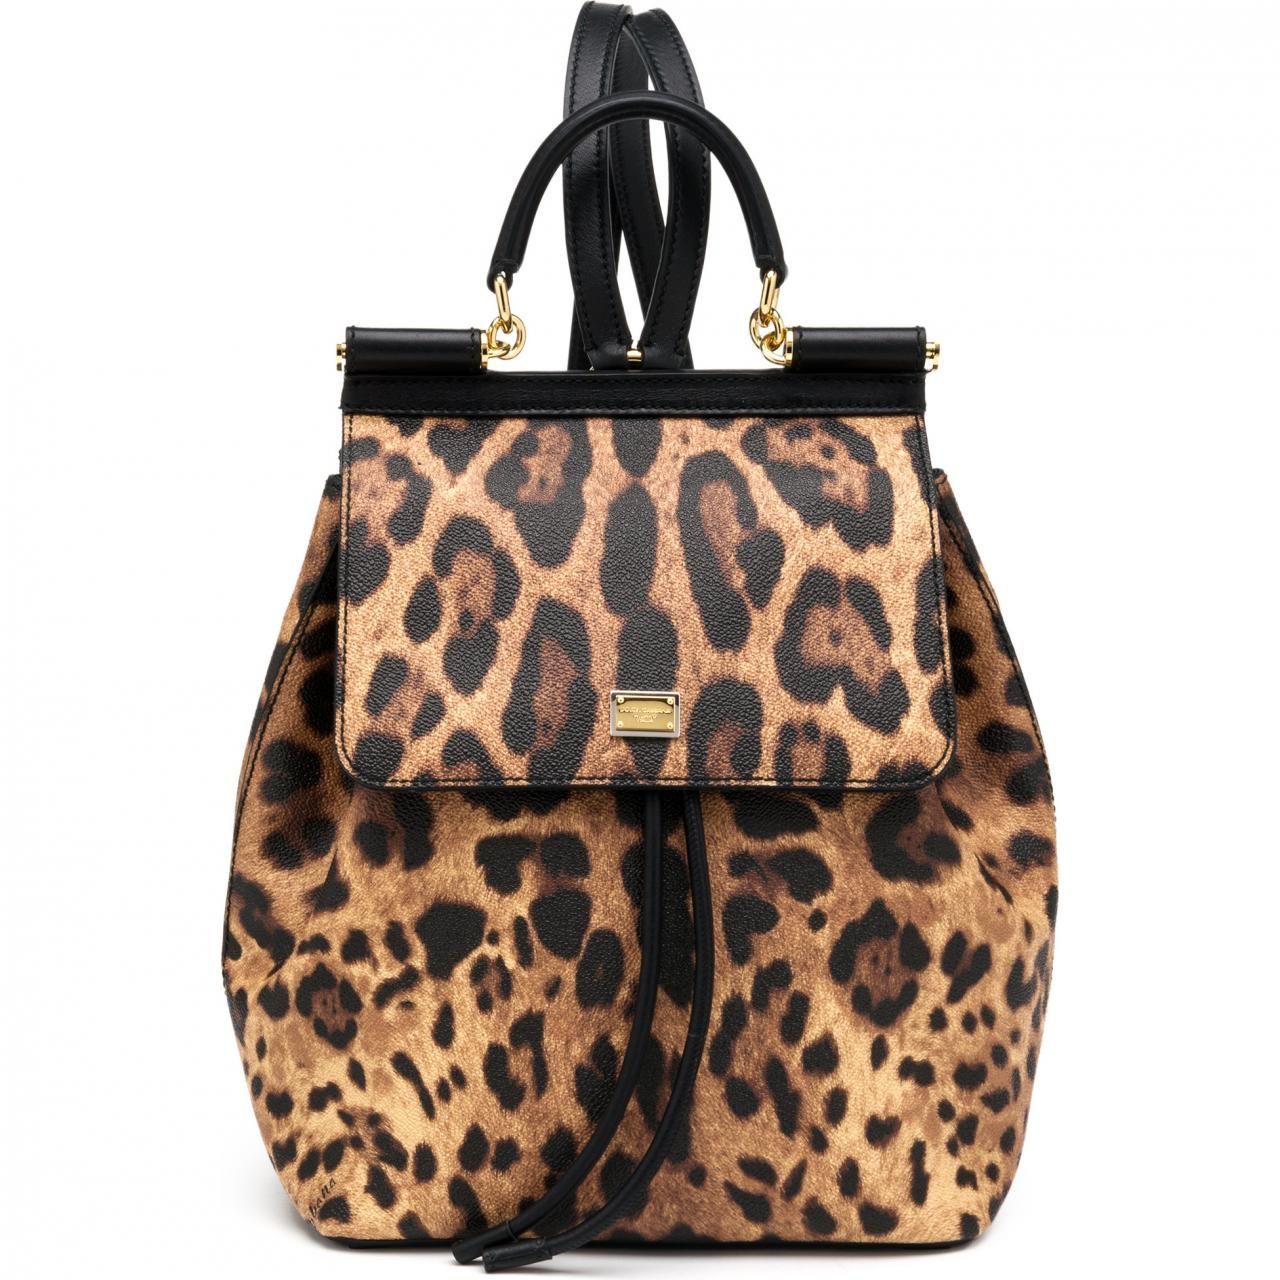 Tote Bag On Sale, Leopard, Coated Canvas, 2017, one size Dolce & Gabbana